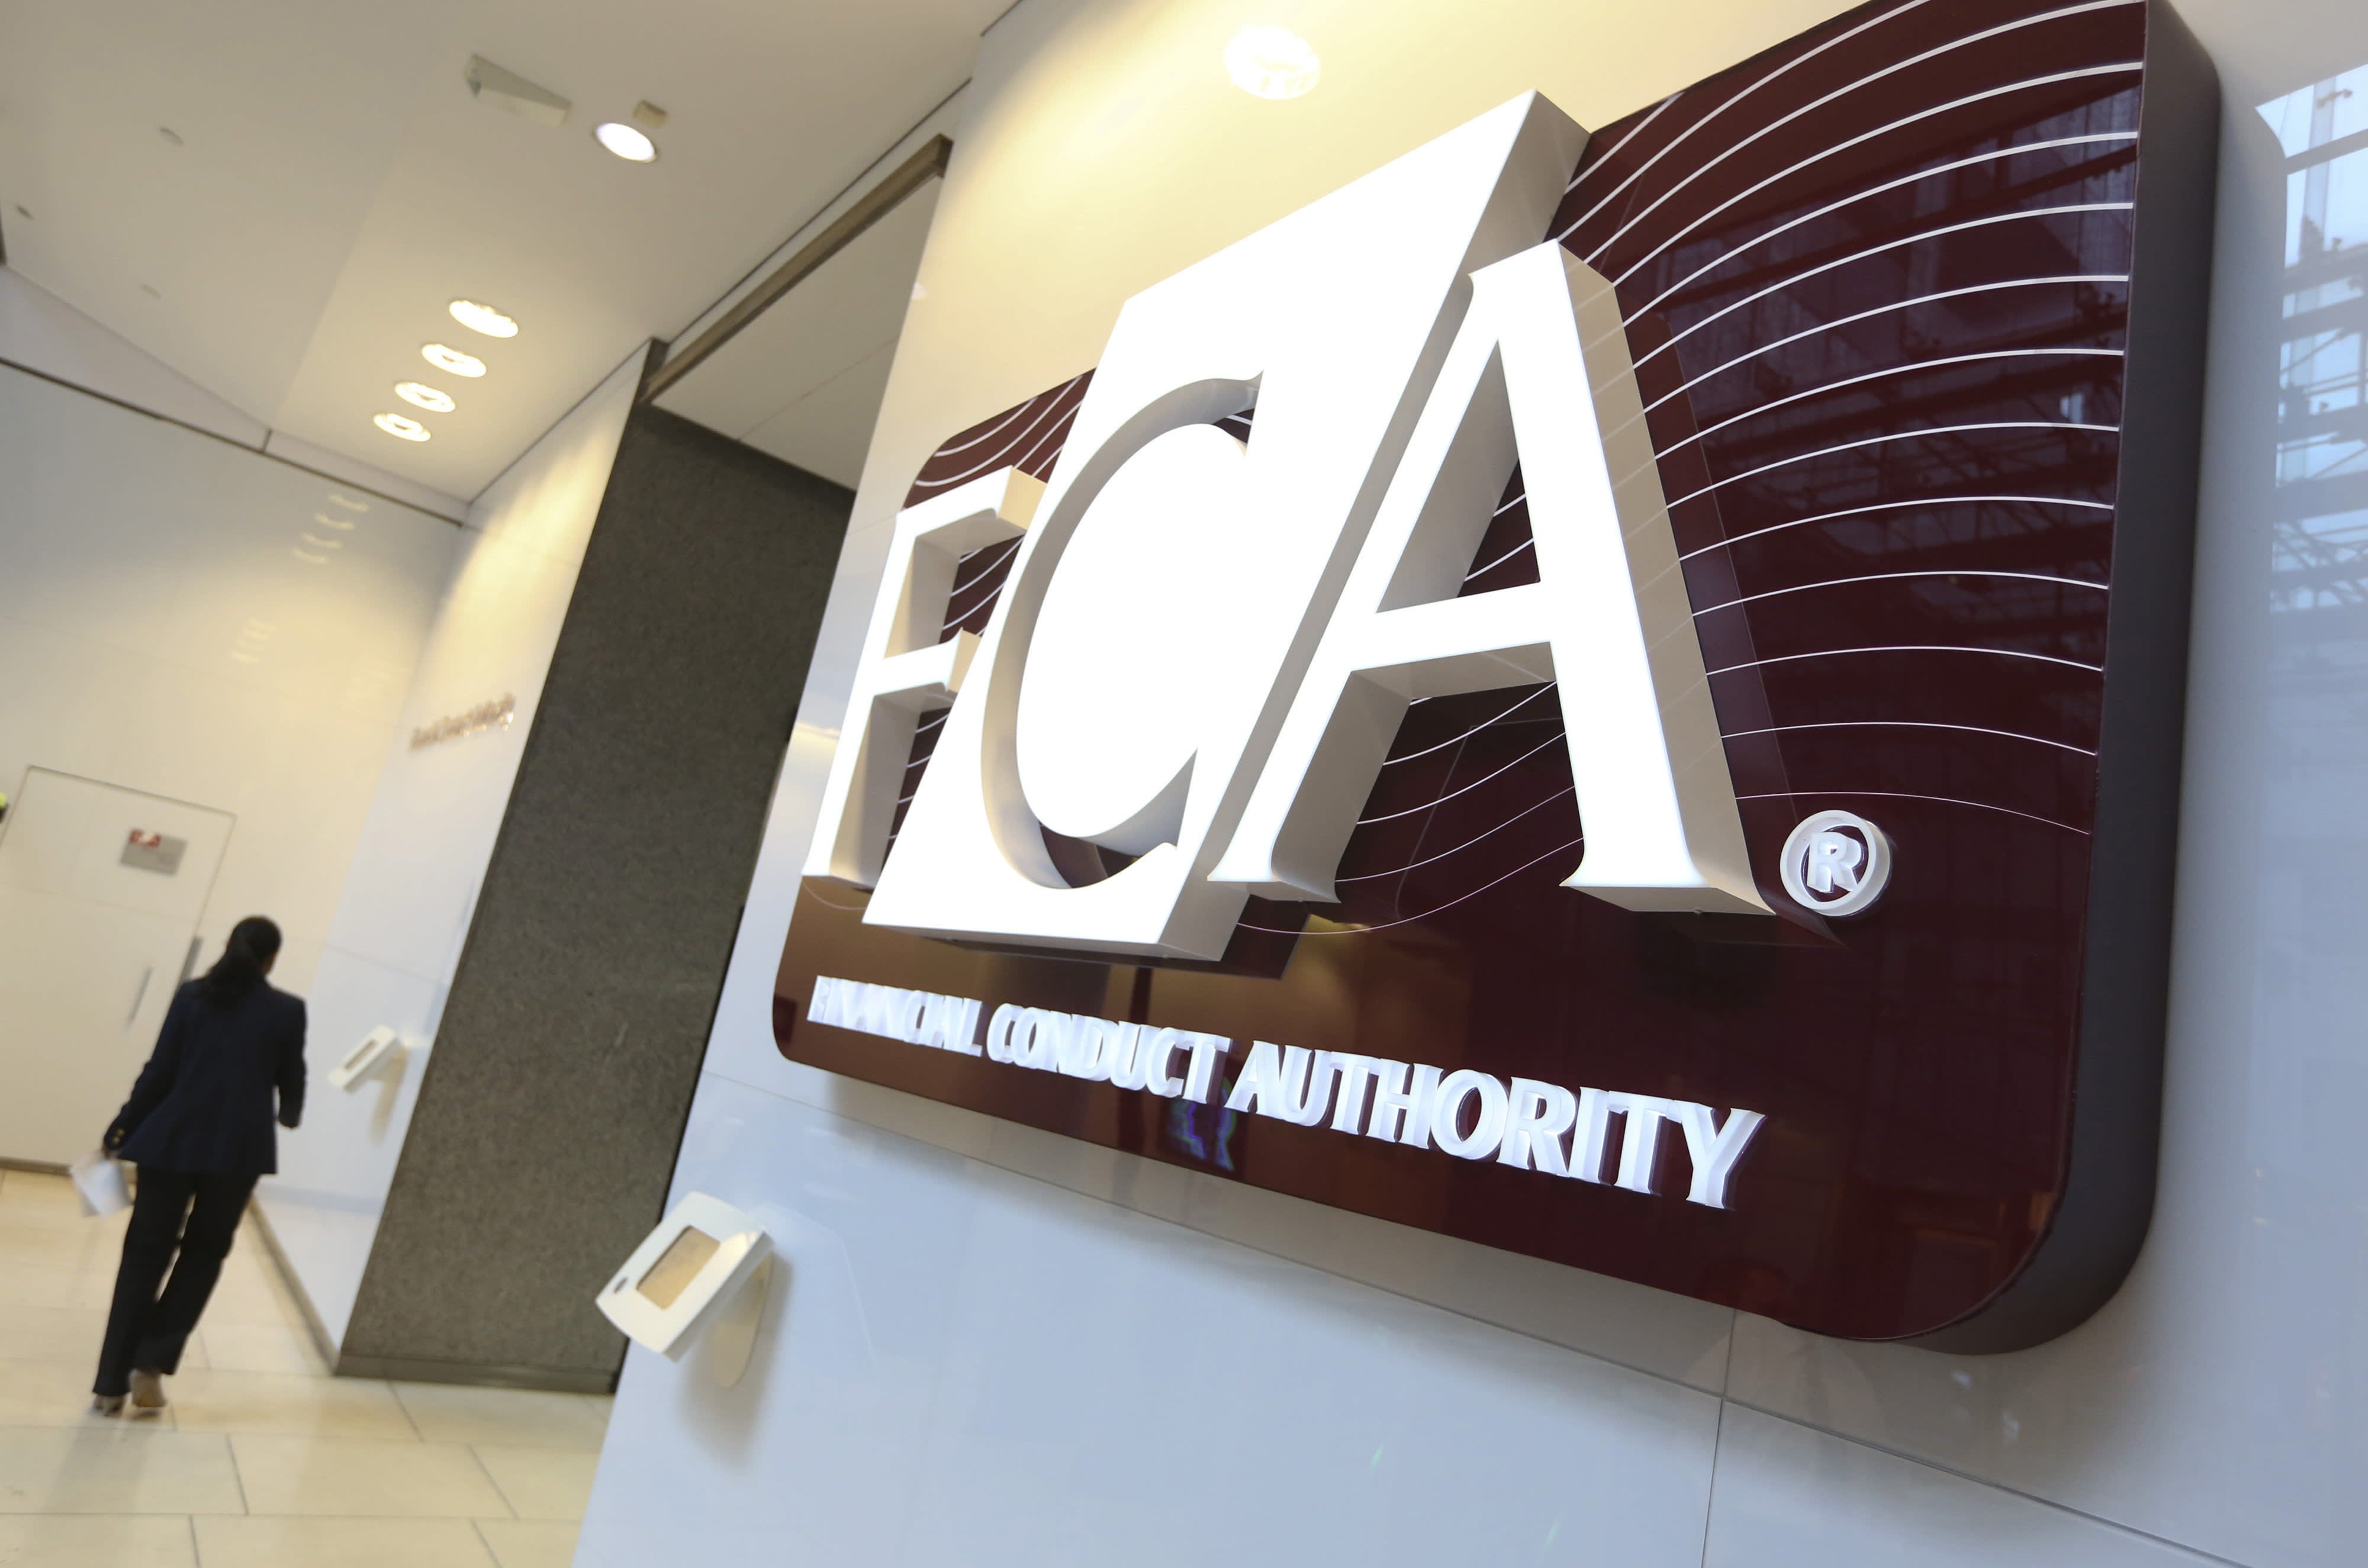 FCA register will go down if UK leaves EU next week